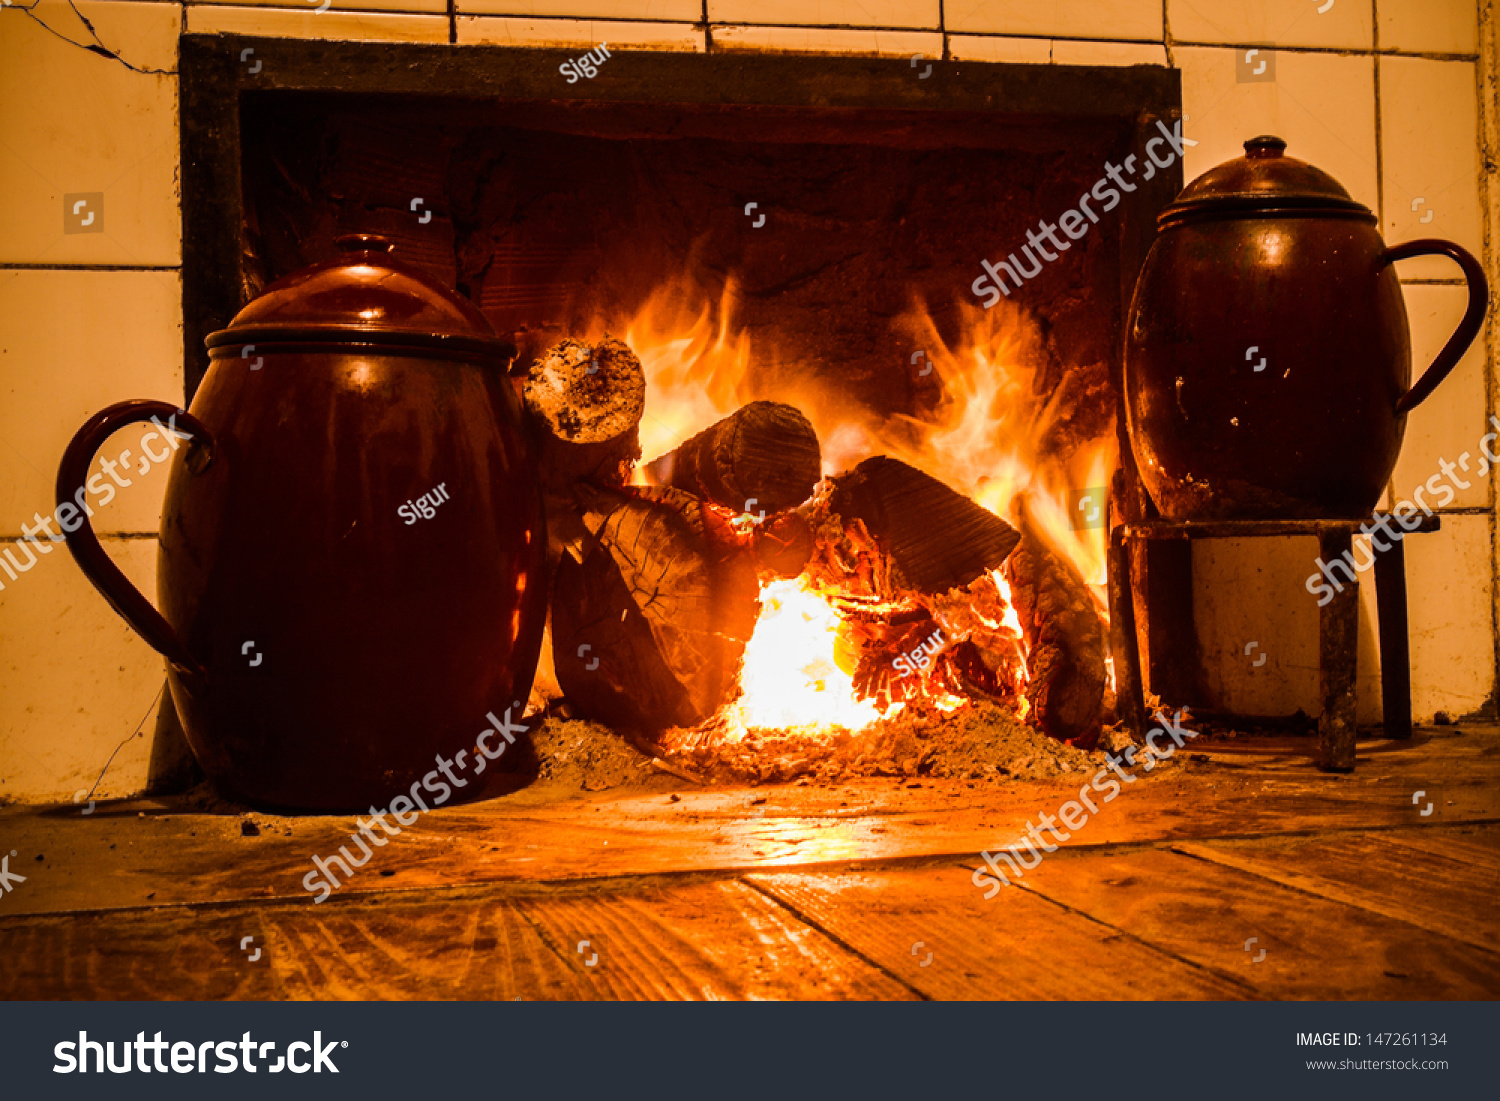 Kitchen Fireplace For Cooking Royalty Free Chimney Kitchen Hearth Of Burning 147261134 Stock